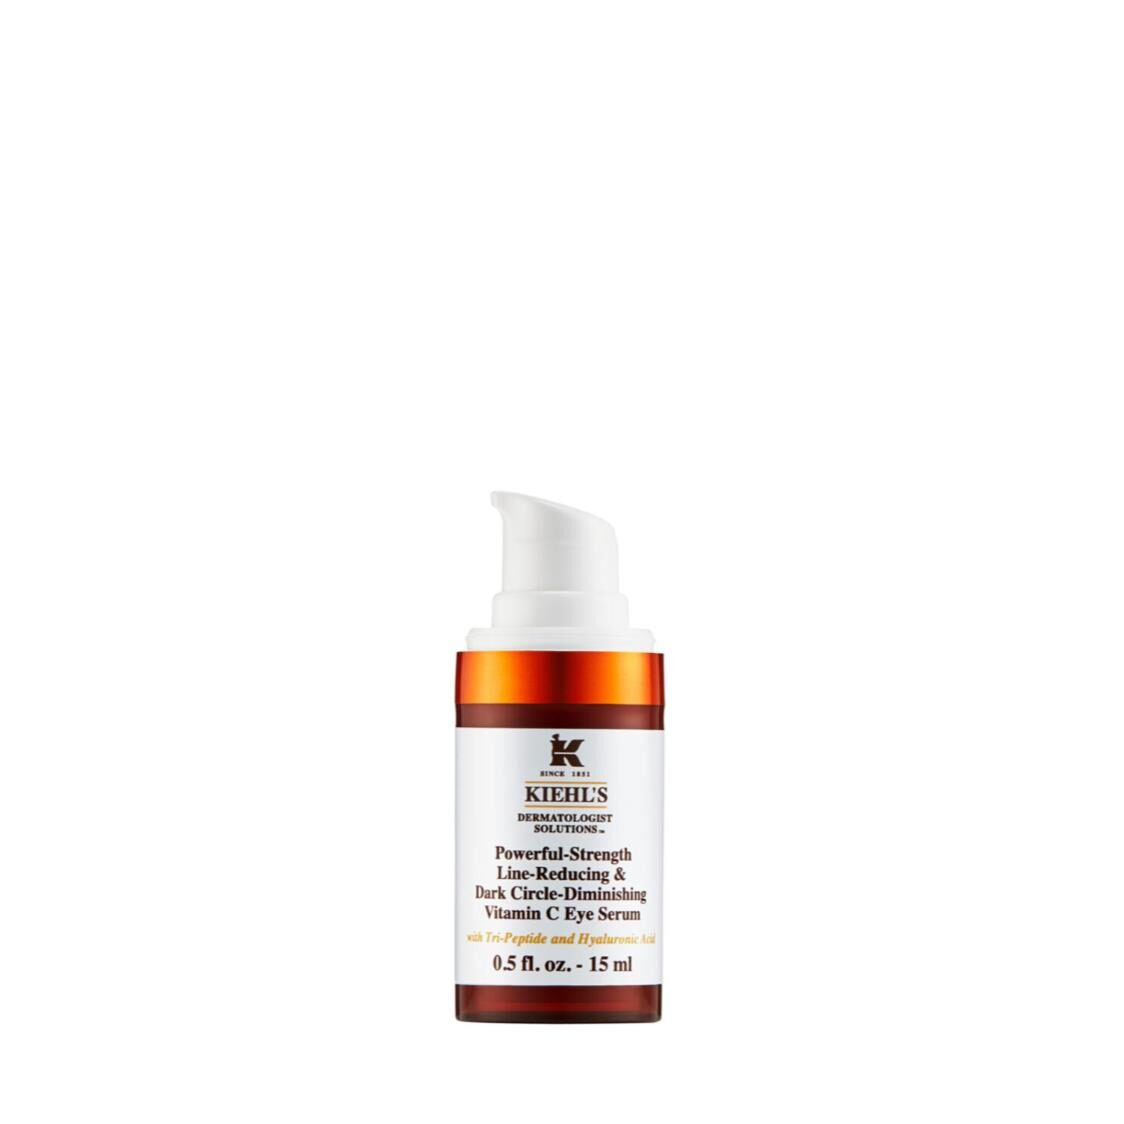 Kiehls Since 1851 Powerful-Strength Line Reducing  Dark Circle Diminishing Vitamin C Eye Serum 15ml